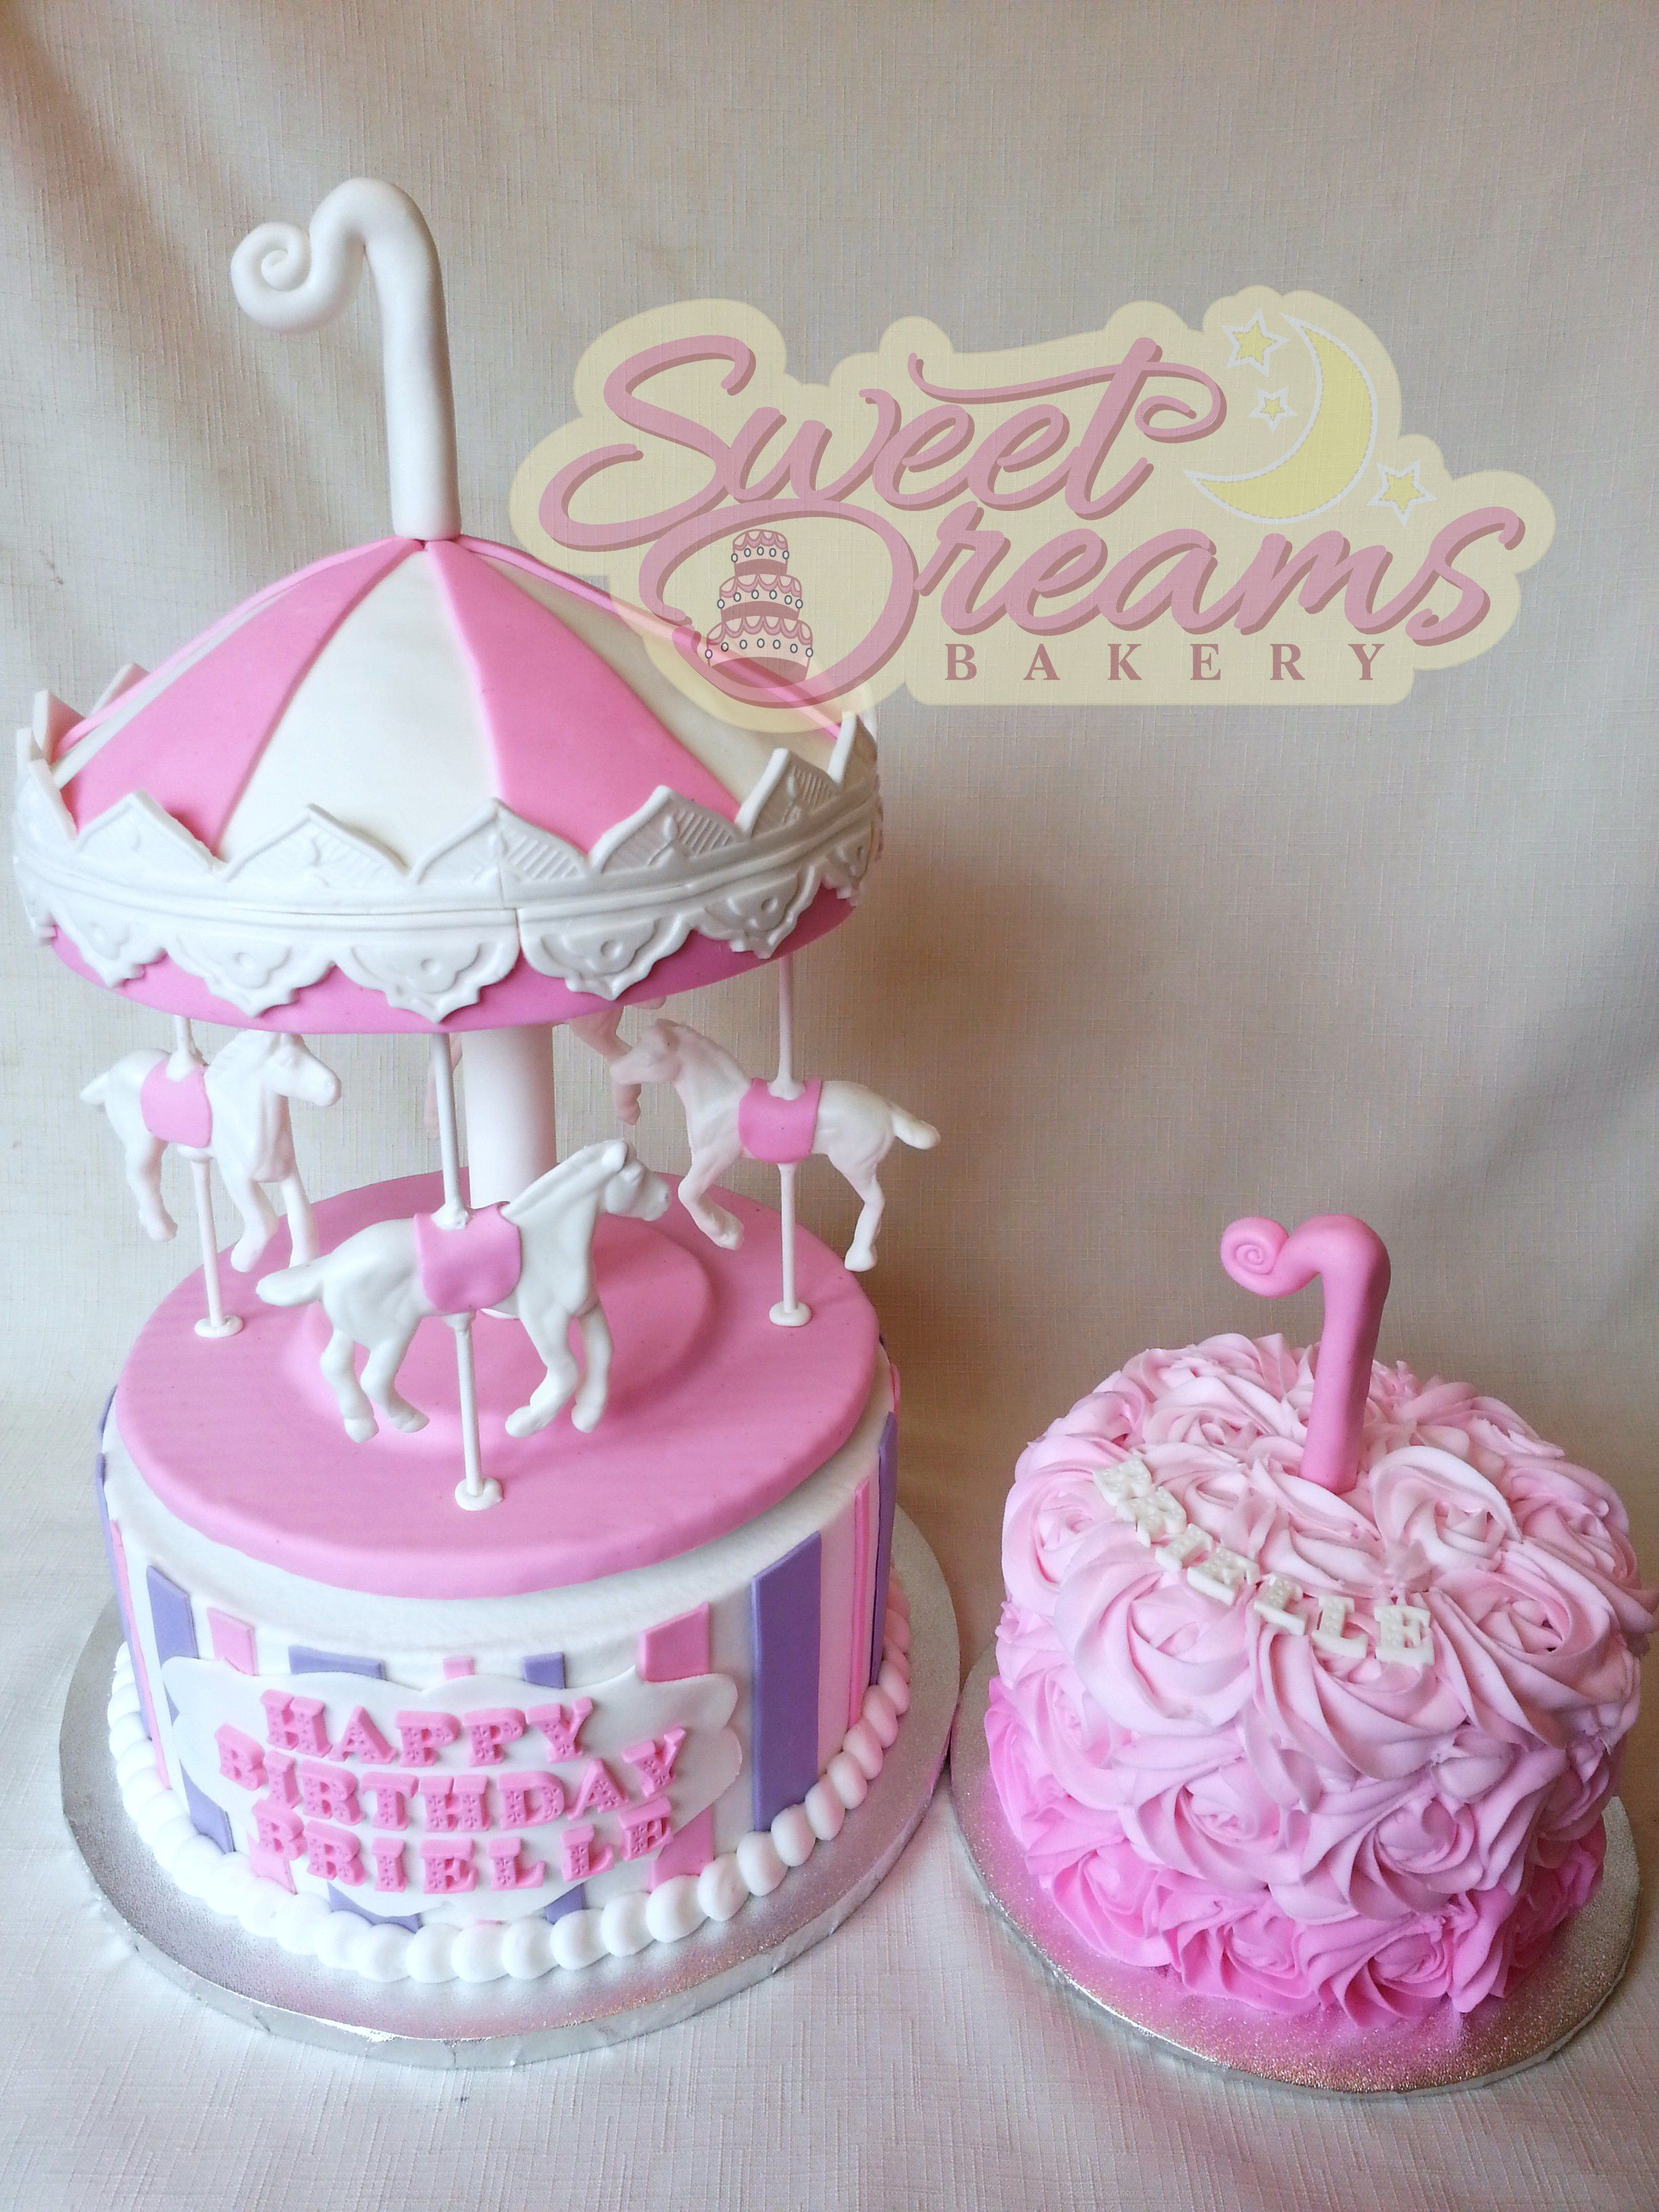 Carousel cake and smash cake from sweet dreams bakery